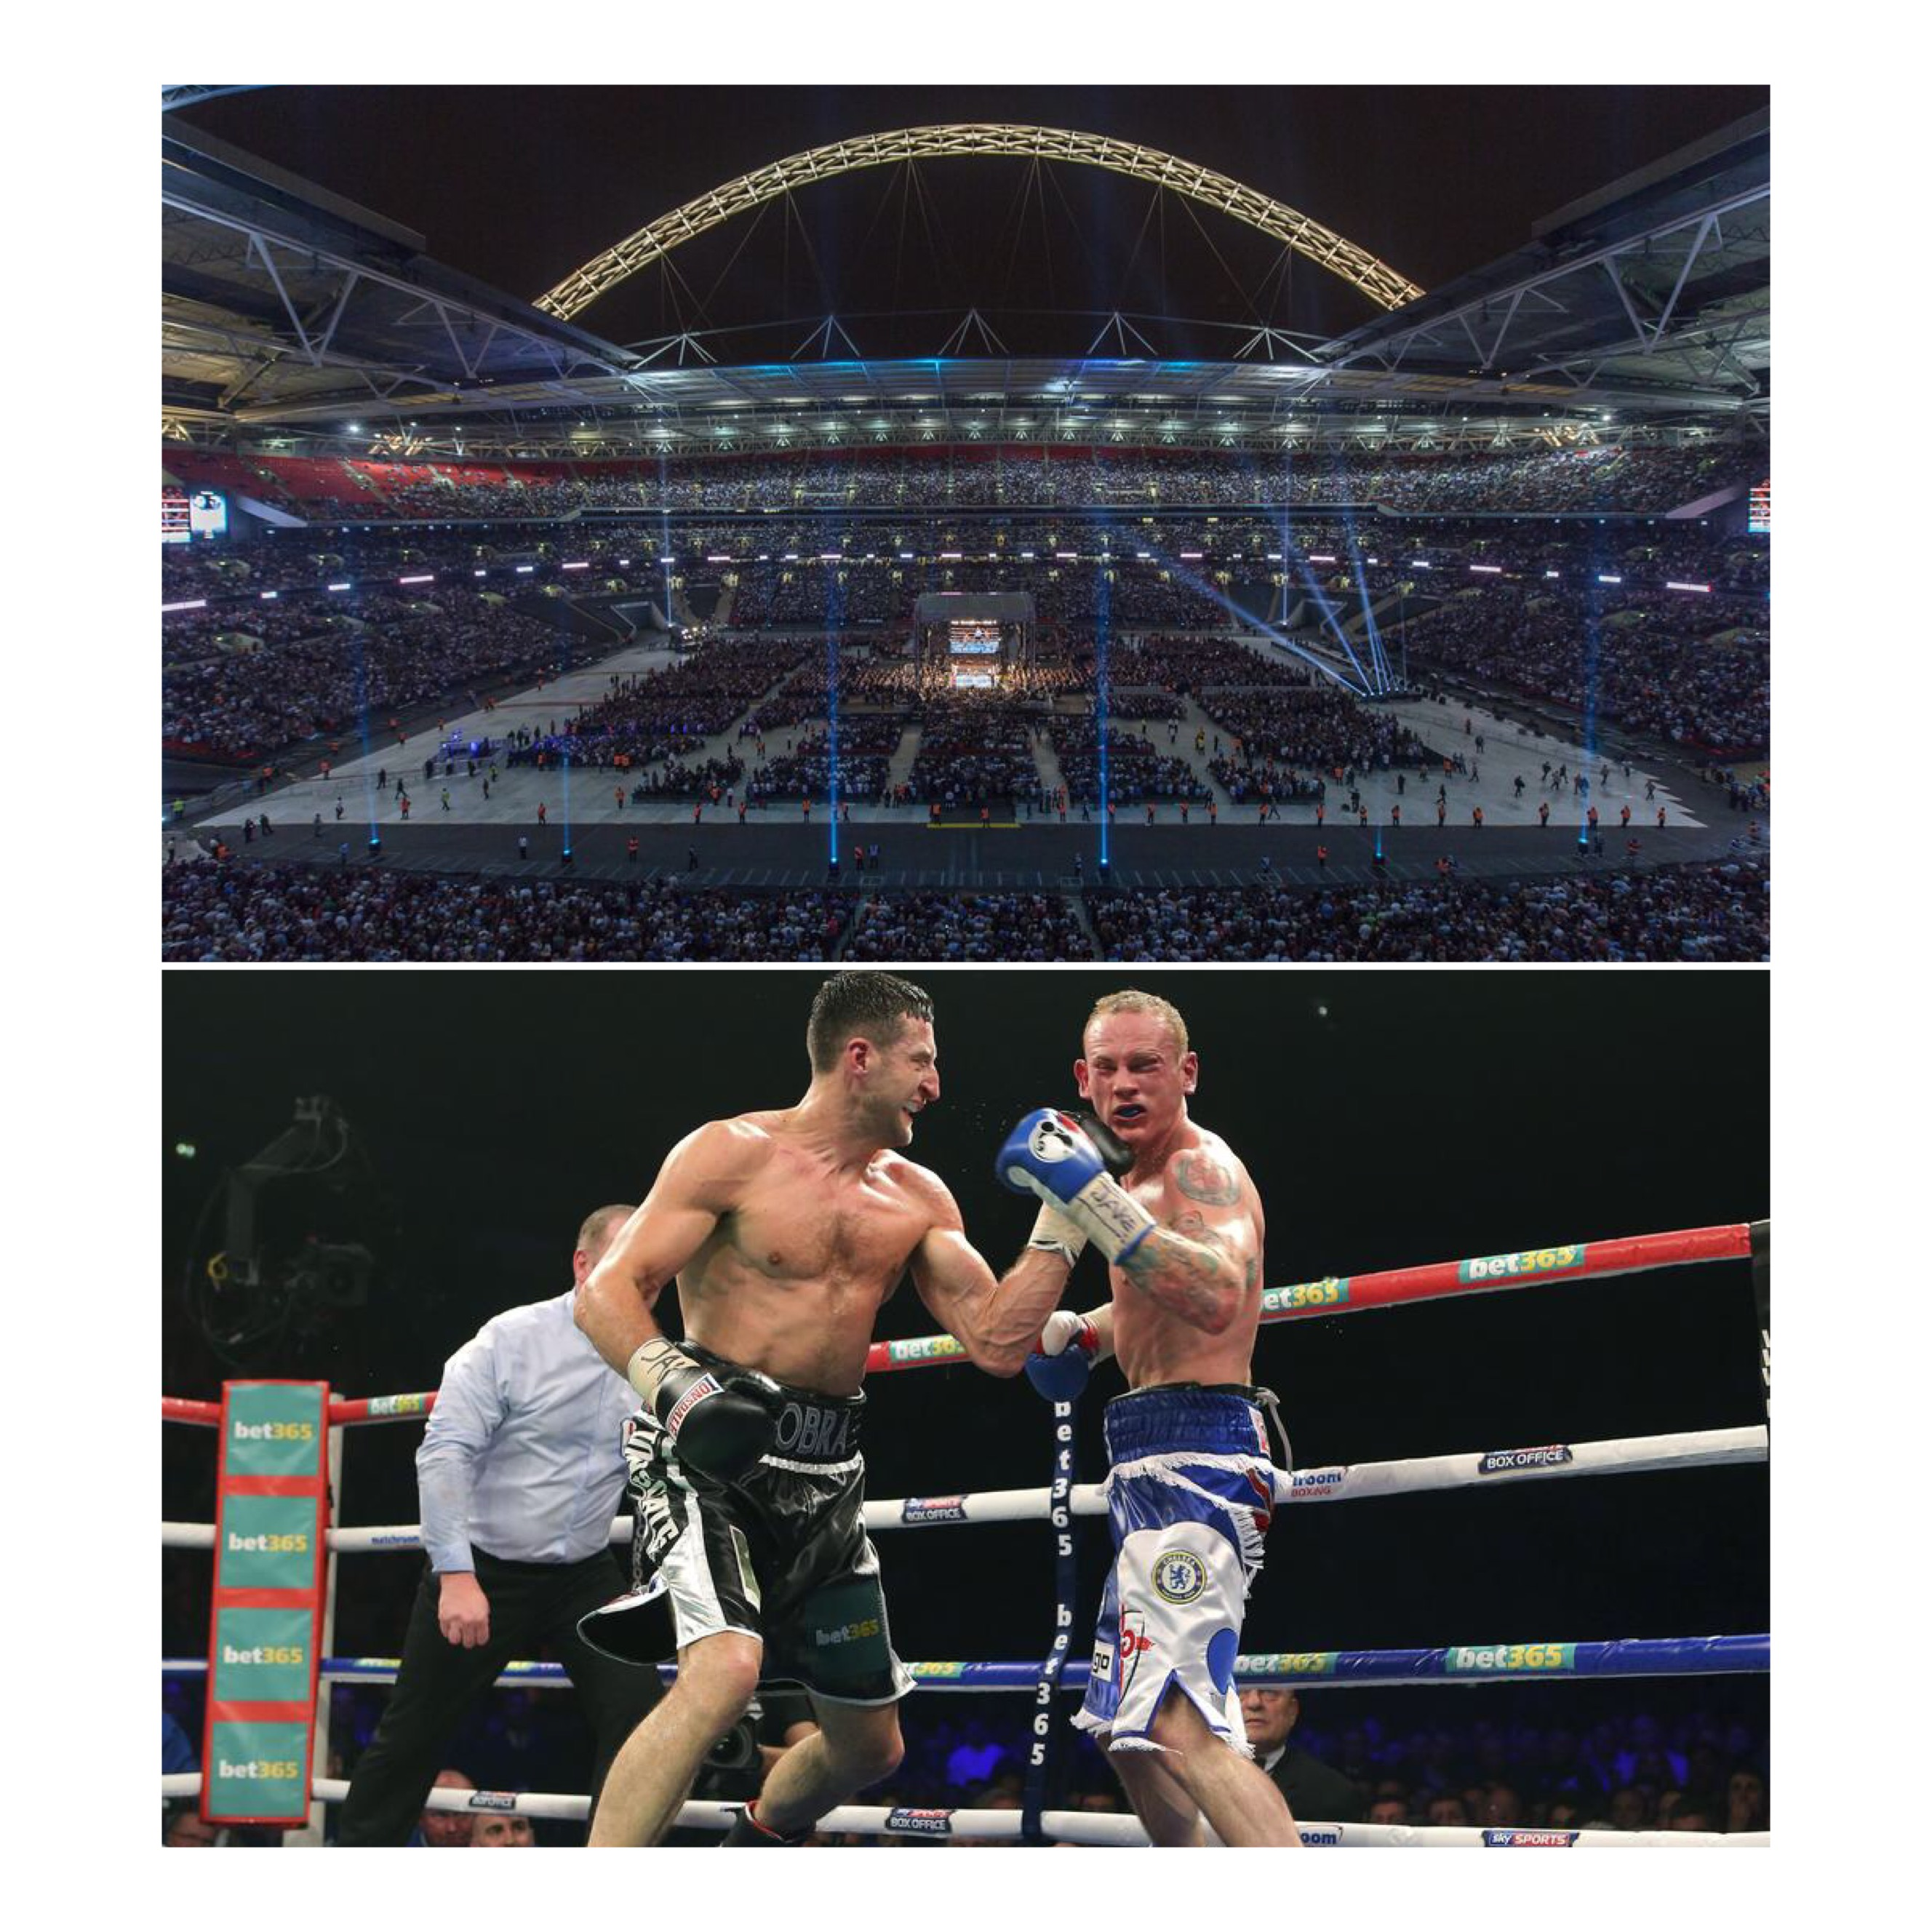 80,000 fans packed into Wembley Stadium on 31st May 2014 to see Froch v Groves 2